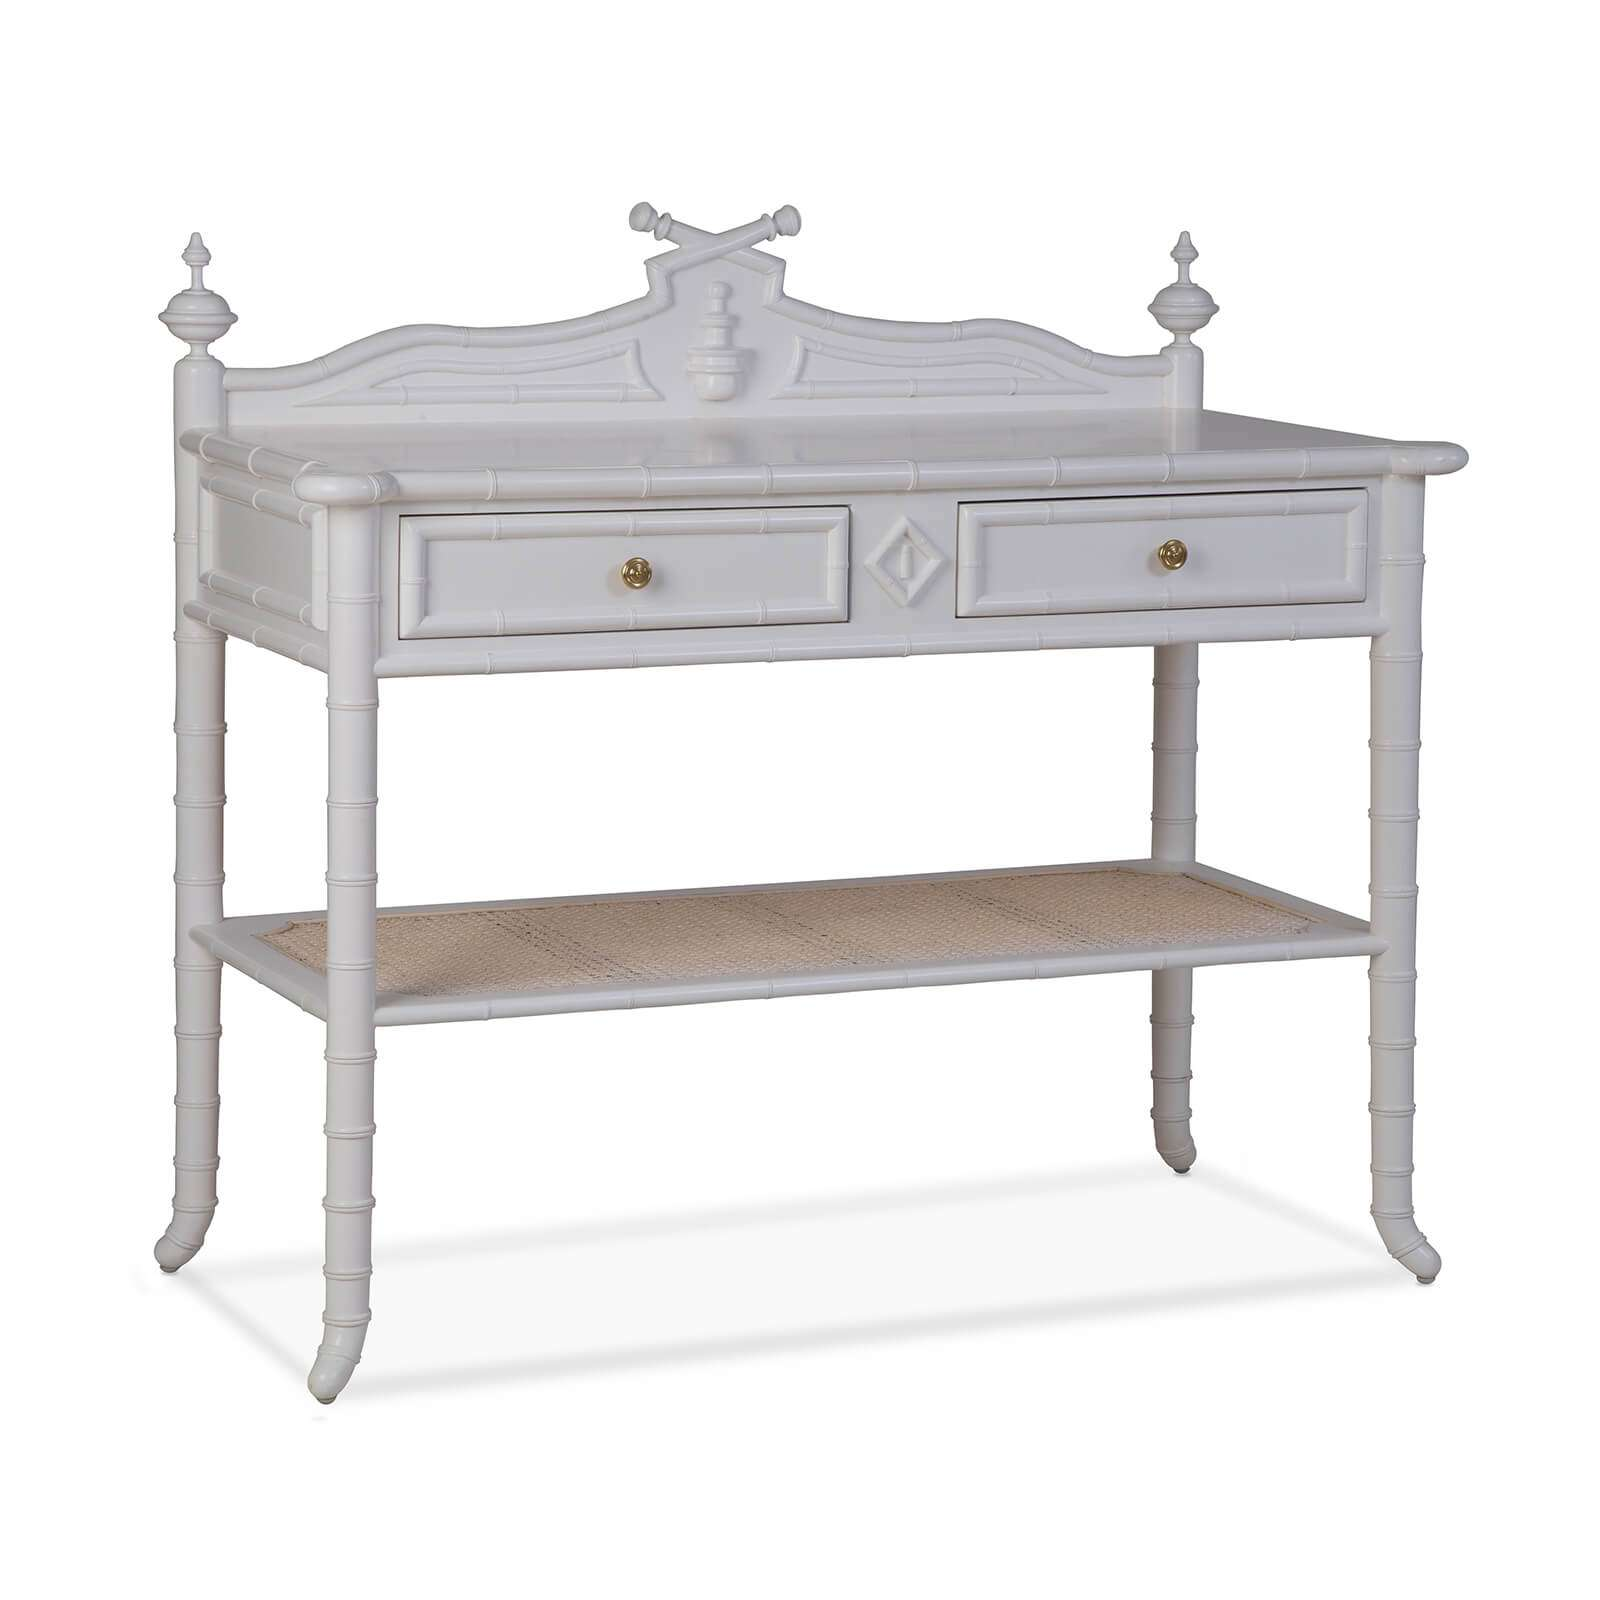 CAPE COLONY CONSOLE W2 - STUART MEMBERY HOME COLLECTION